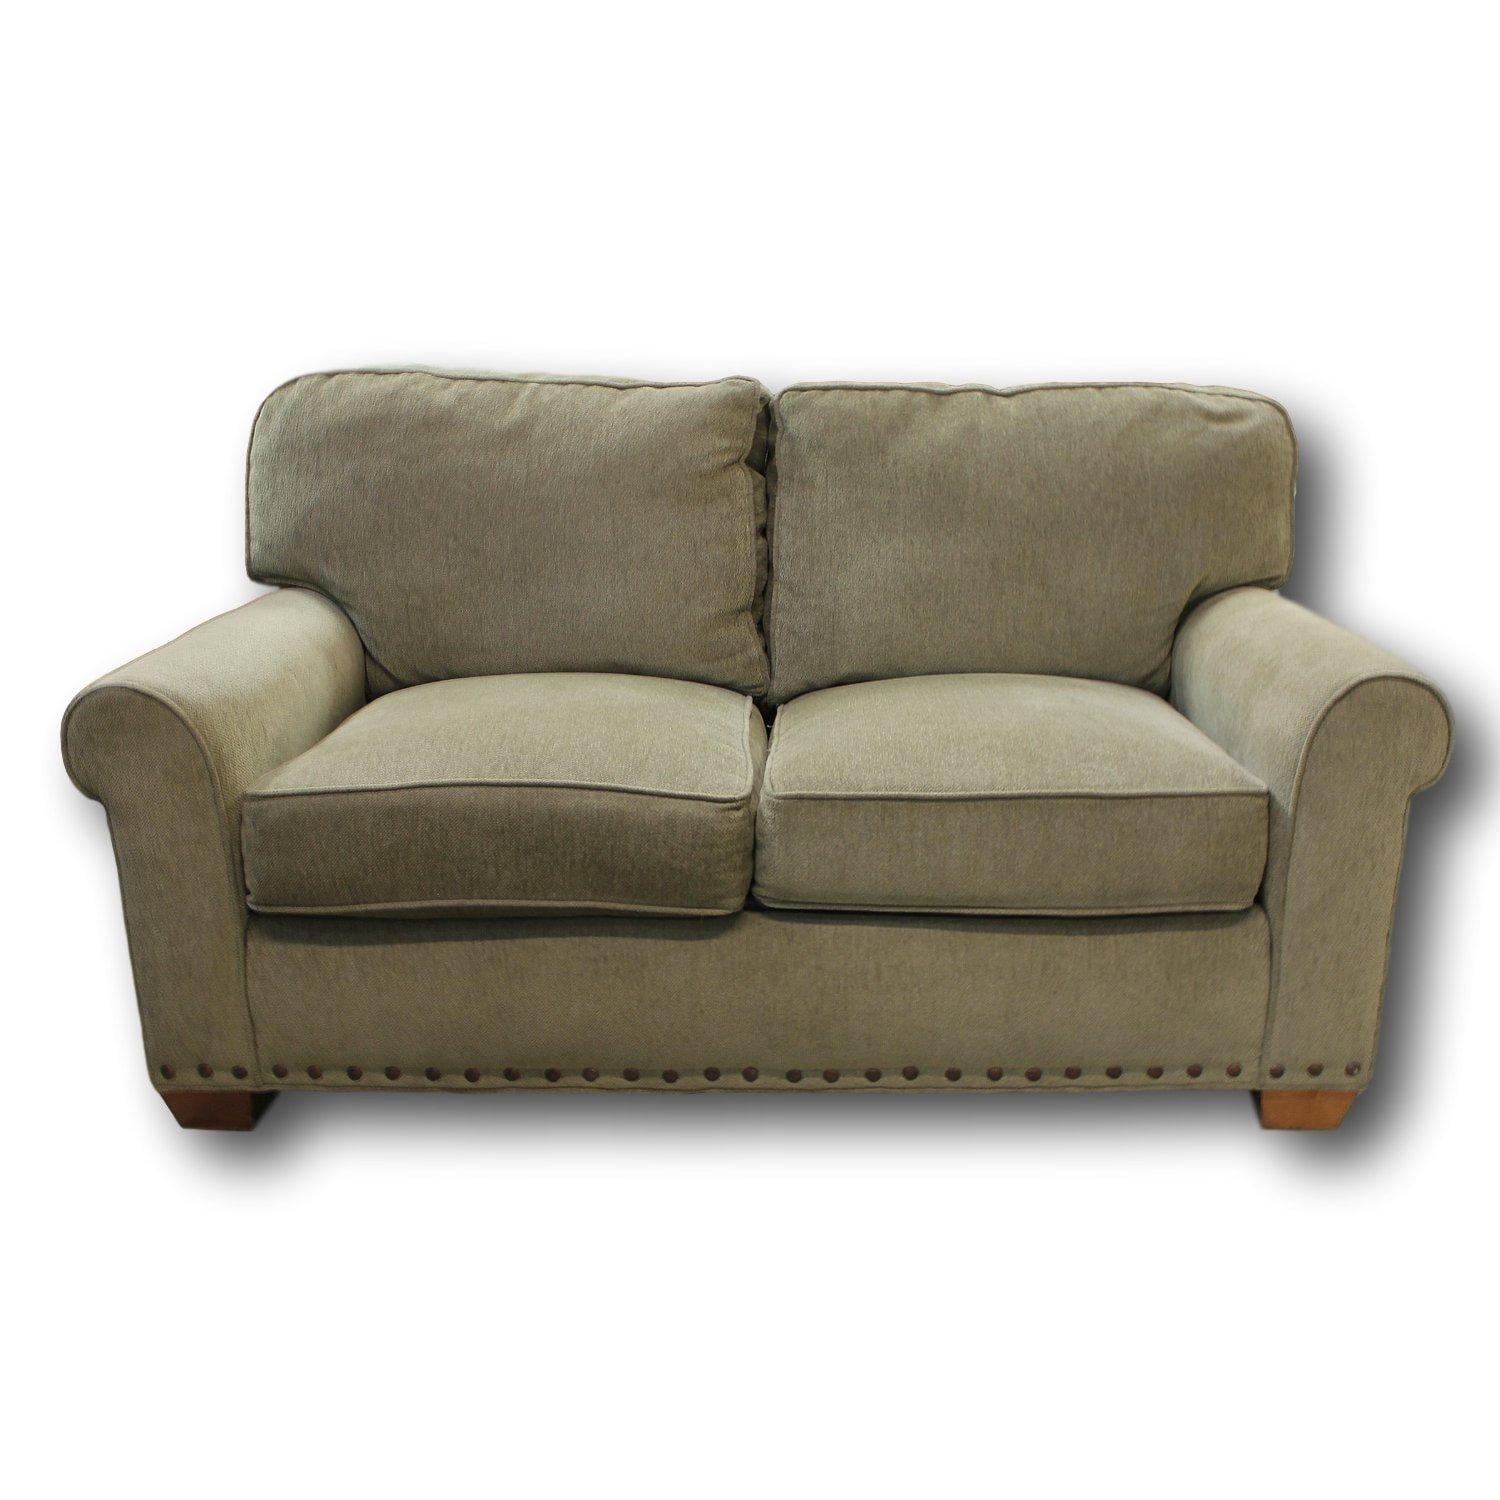 Lee Industries Green Loveseat | Upscale Consignment Intended For Lee Industries Sectional Sofa (Image 14 of 20)